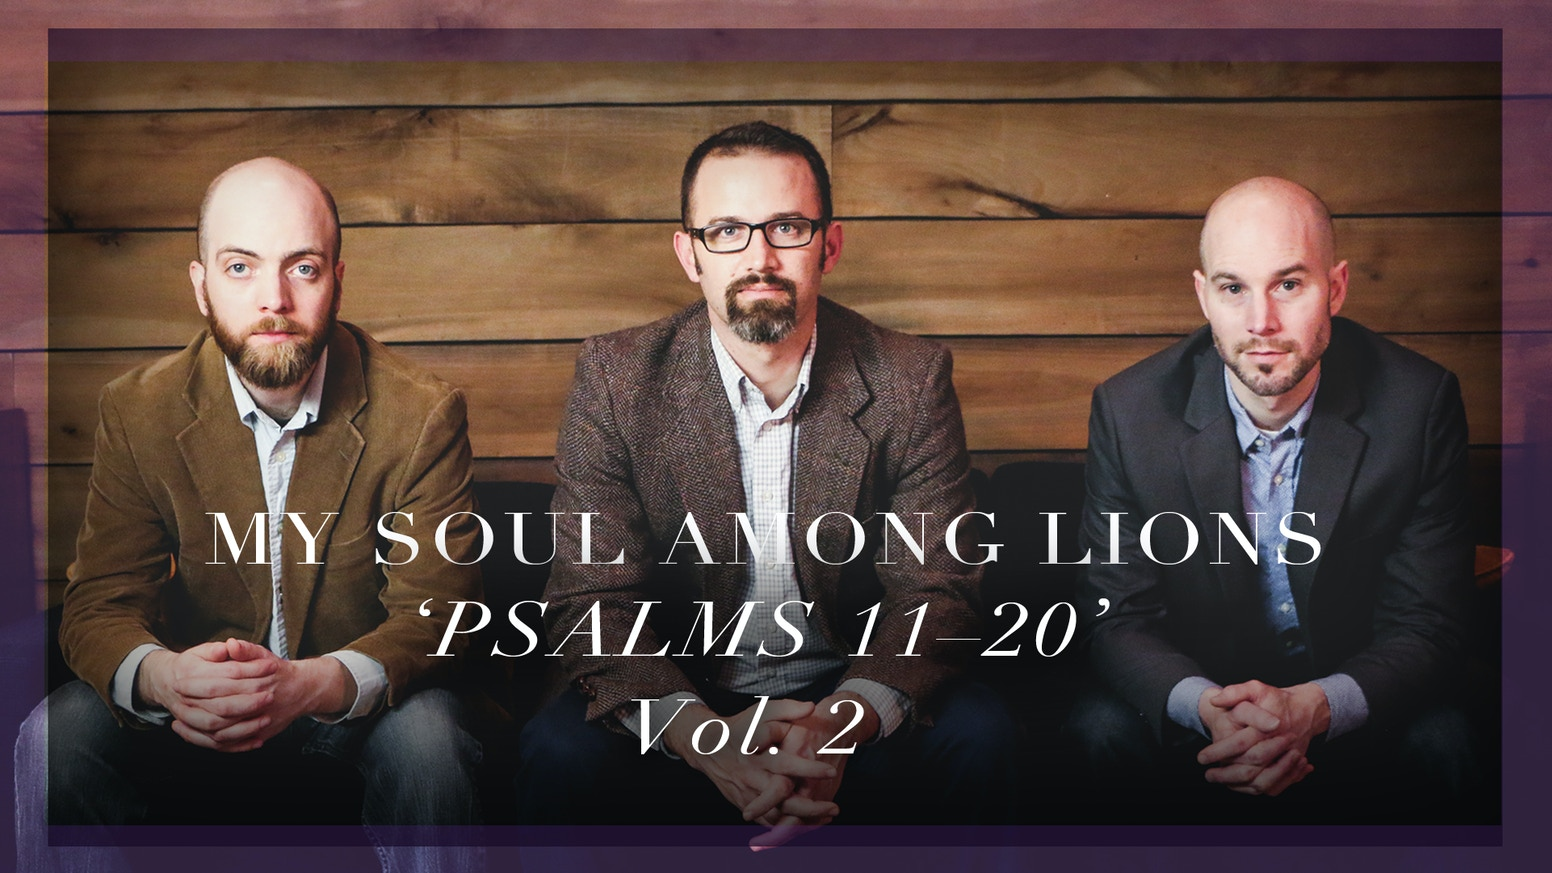 The Psalms go folk...again! Volume 2 in a crazy ambitious effort to set all 150 Psalms to music.